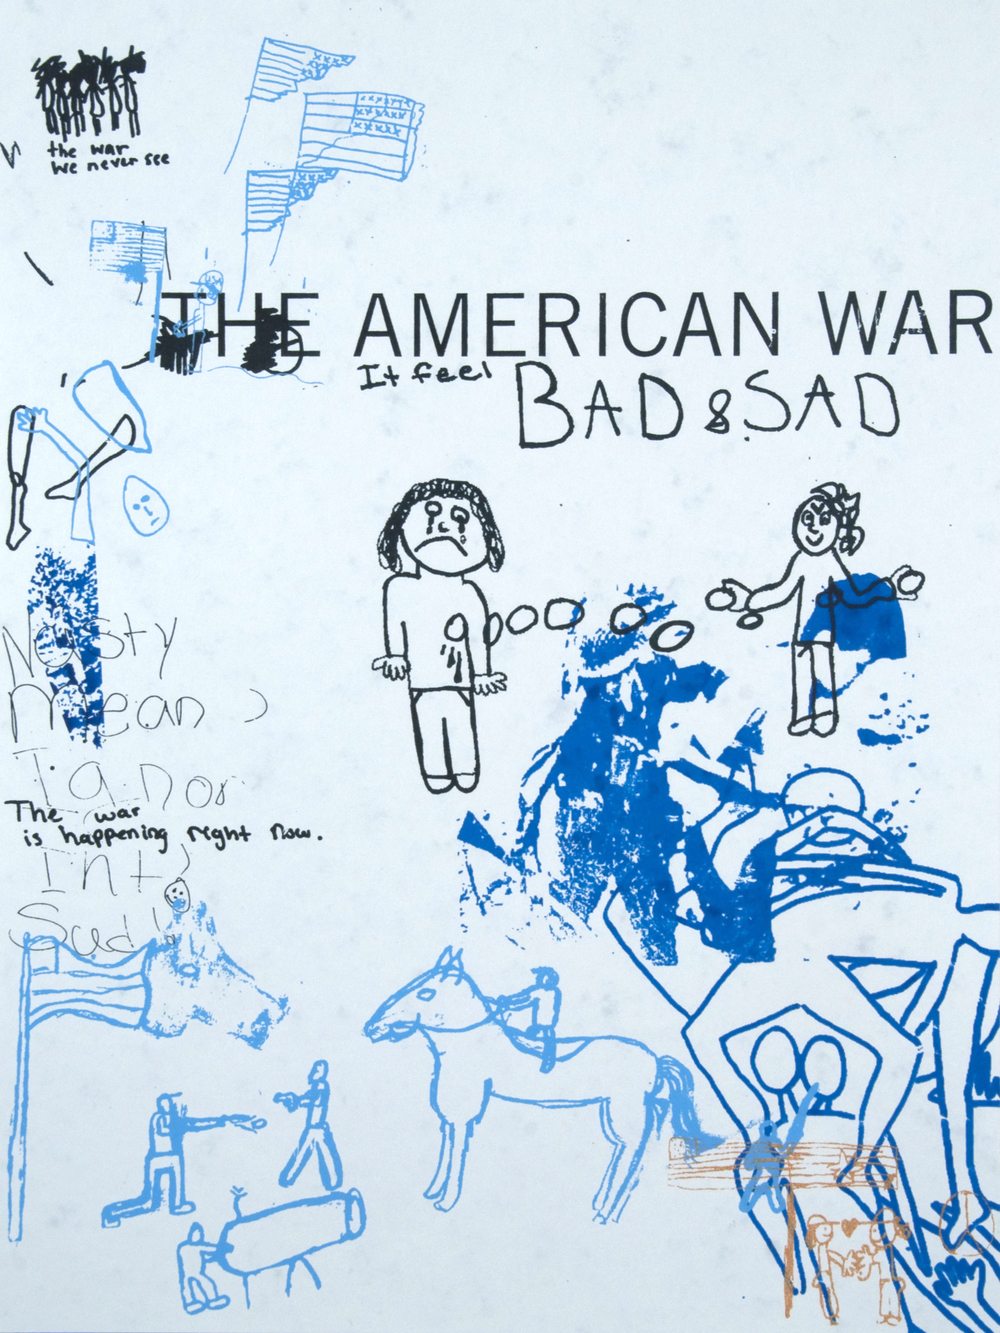 10 American War Bad and Sad by Harrell Fletcher and Transformazium.jpg